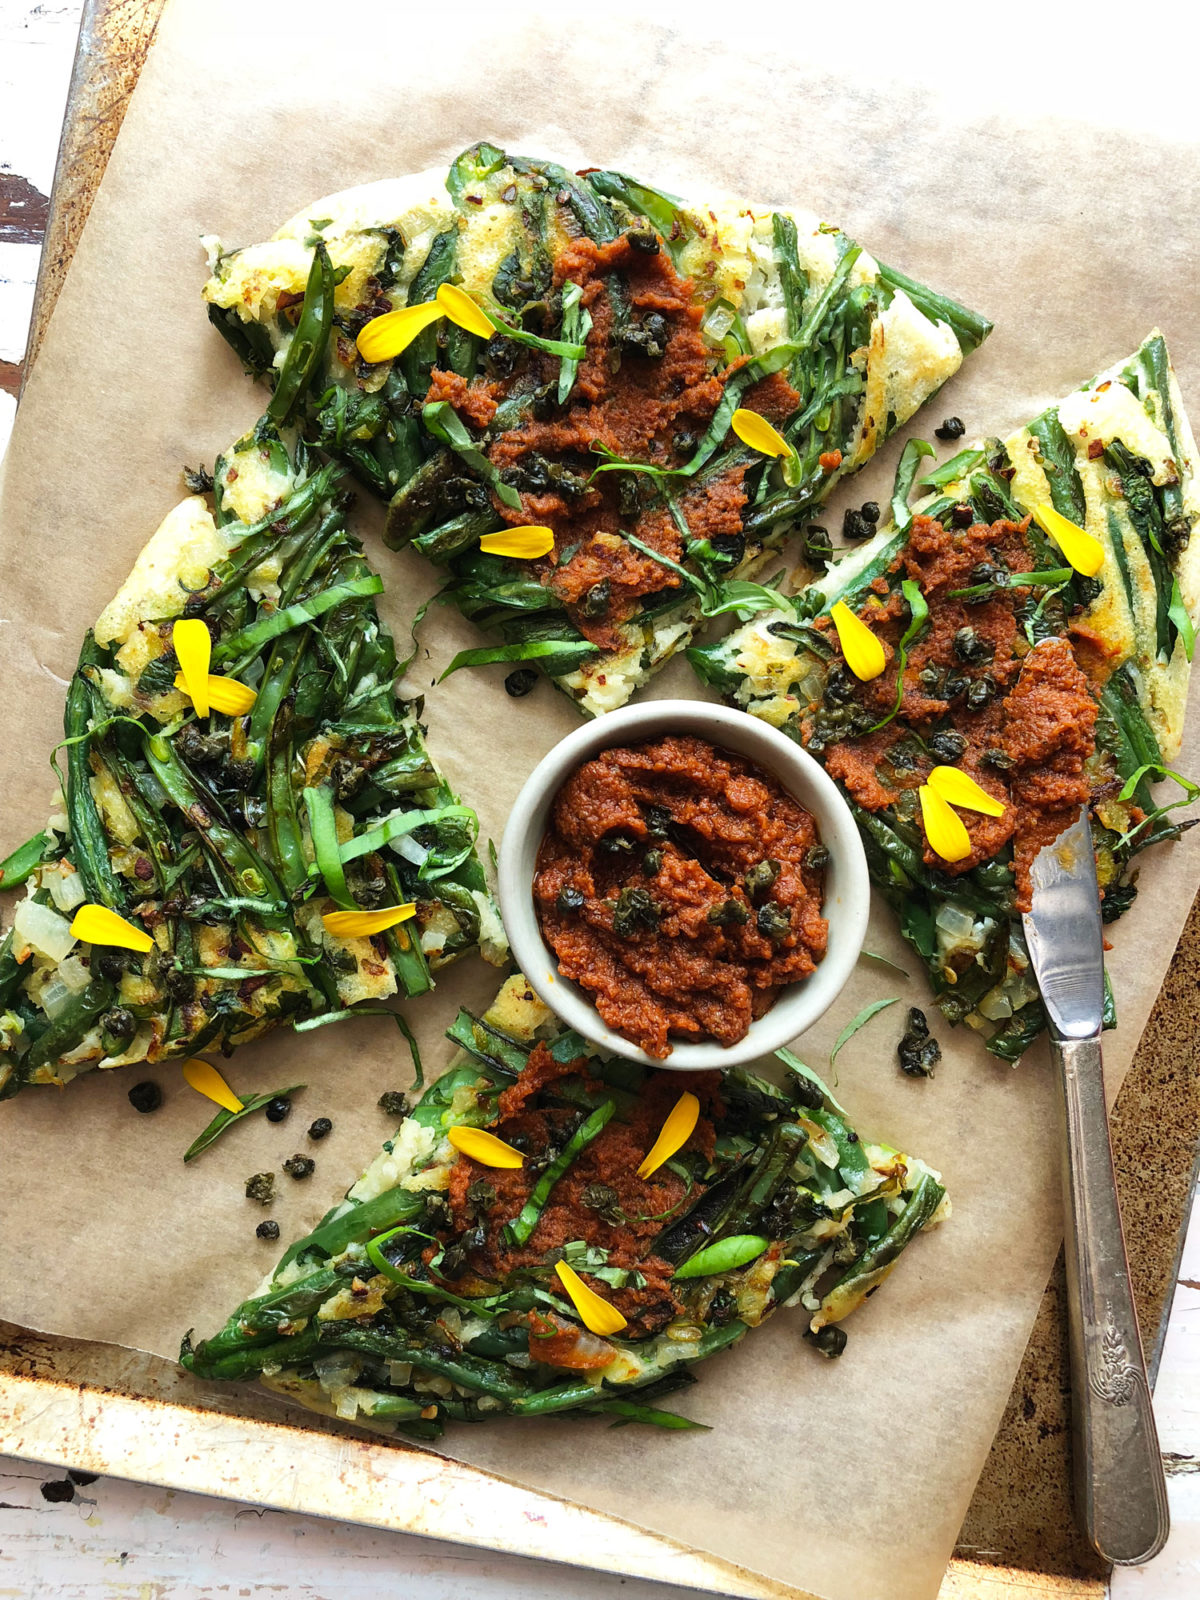 Green Bean and Basil Pancake with Sun-Dried Tomato Spread by Marisa Ford — Delicious & Sons